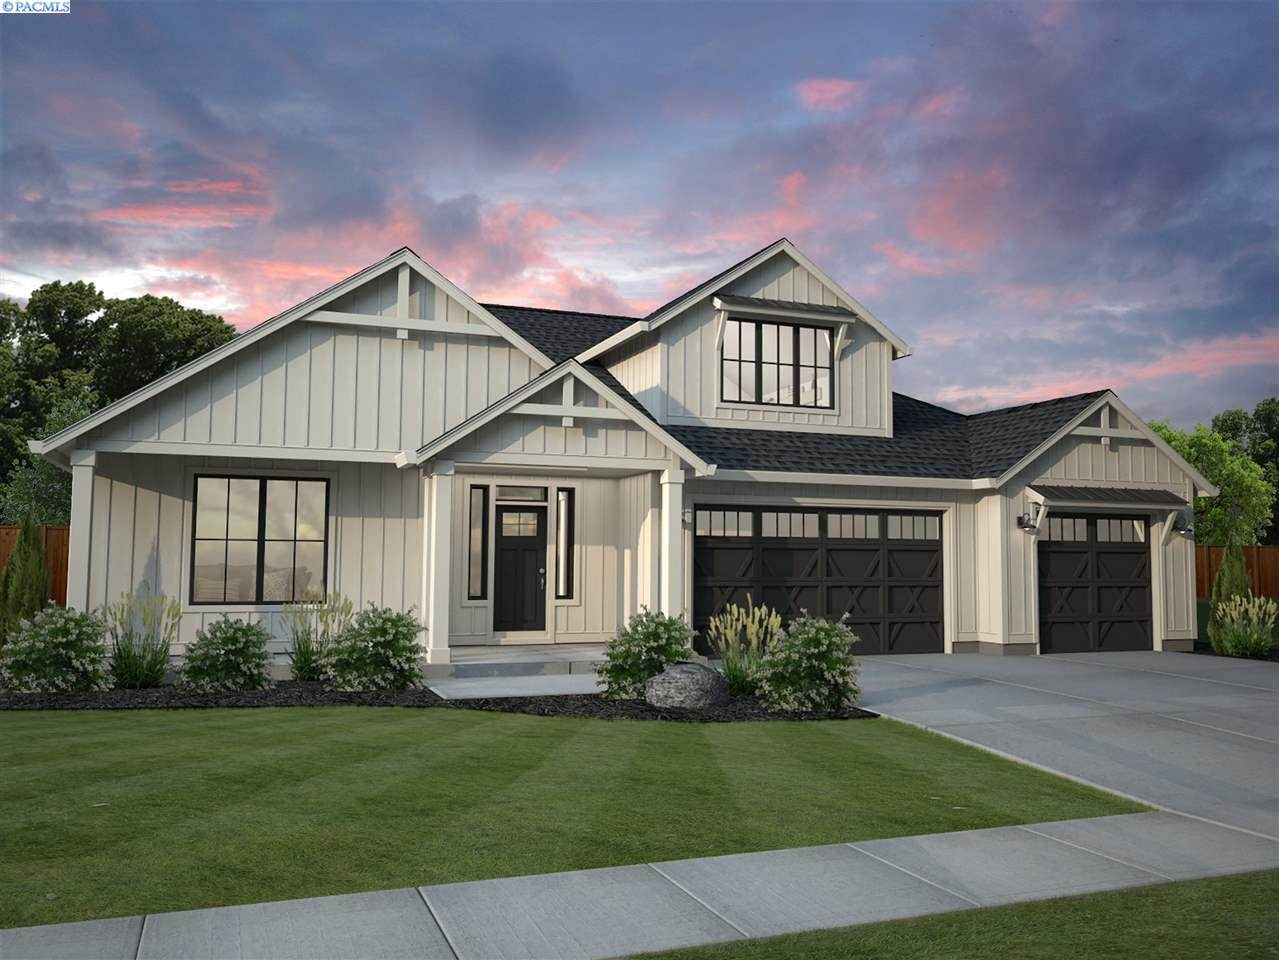 Lot 6 Summitview Drive - Photo 1